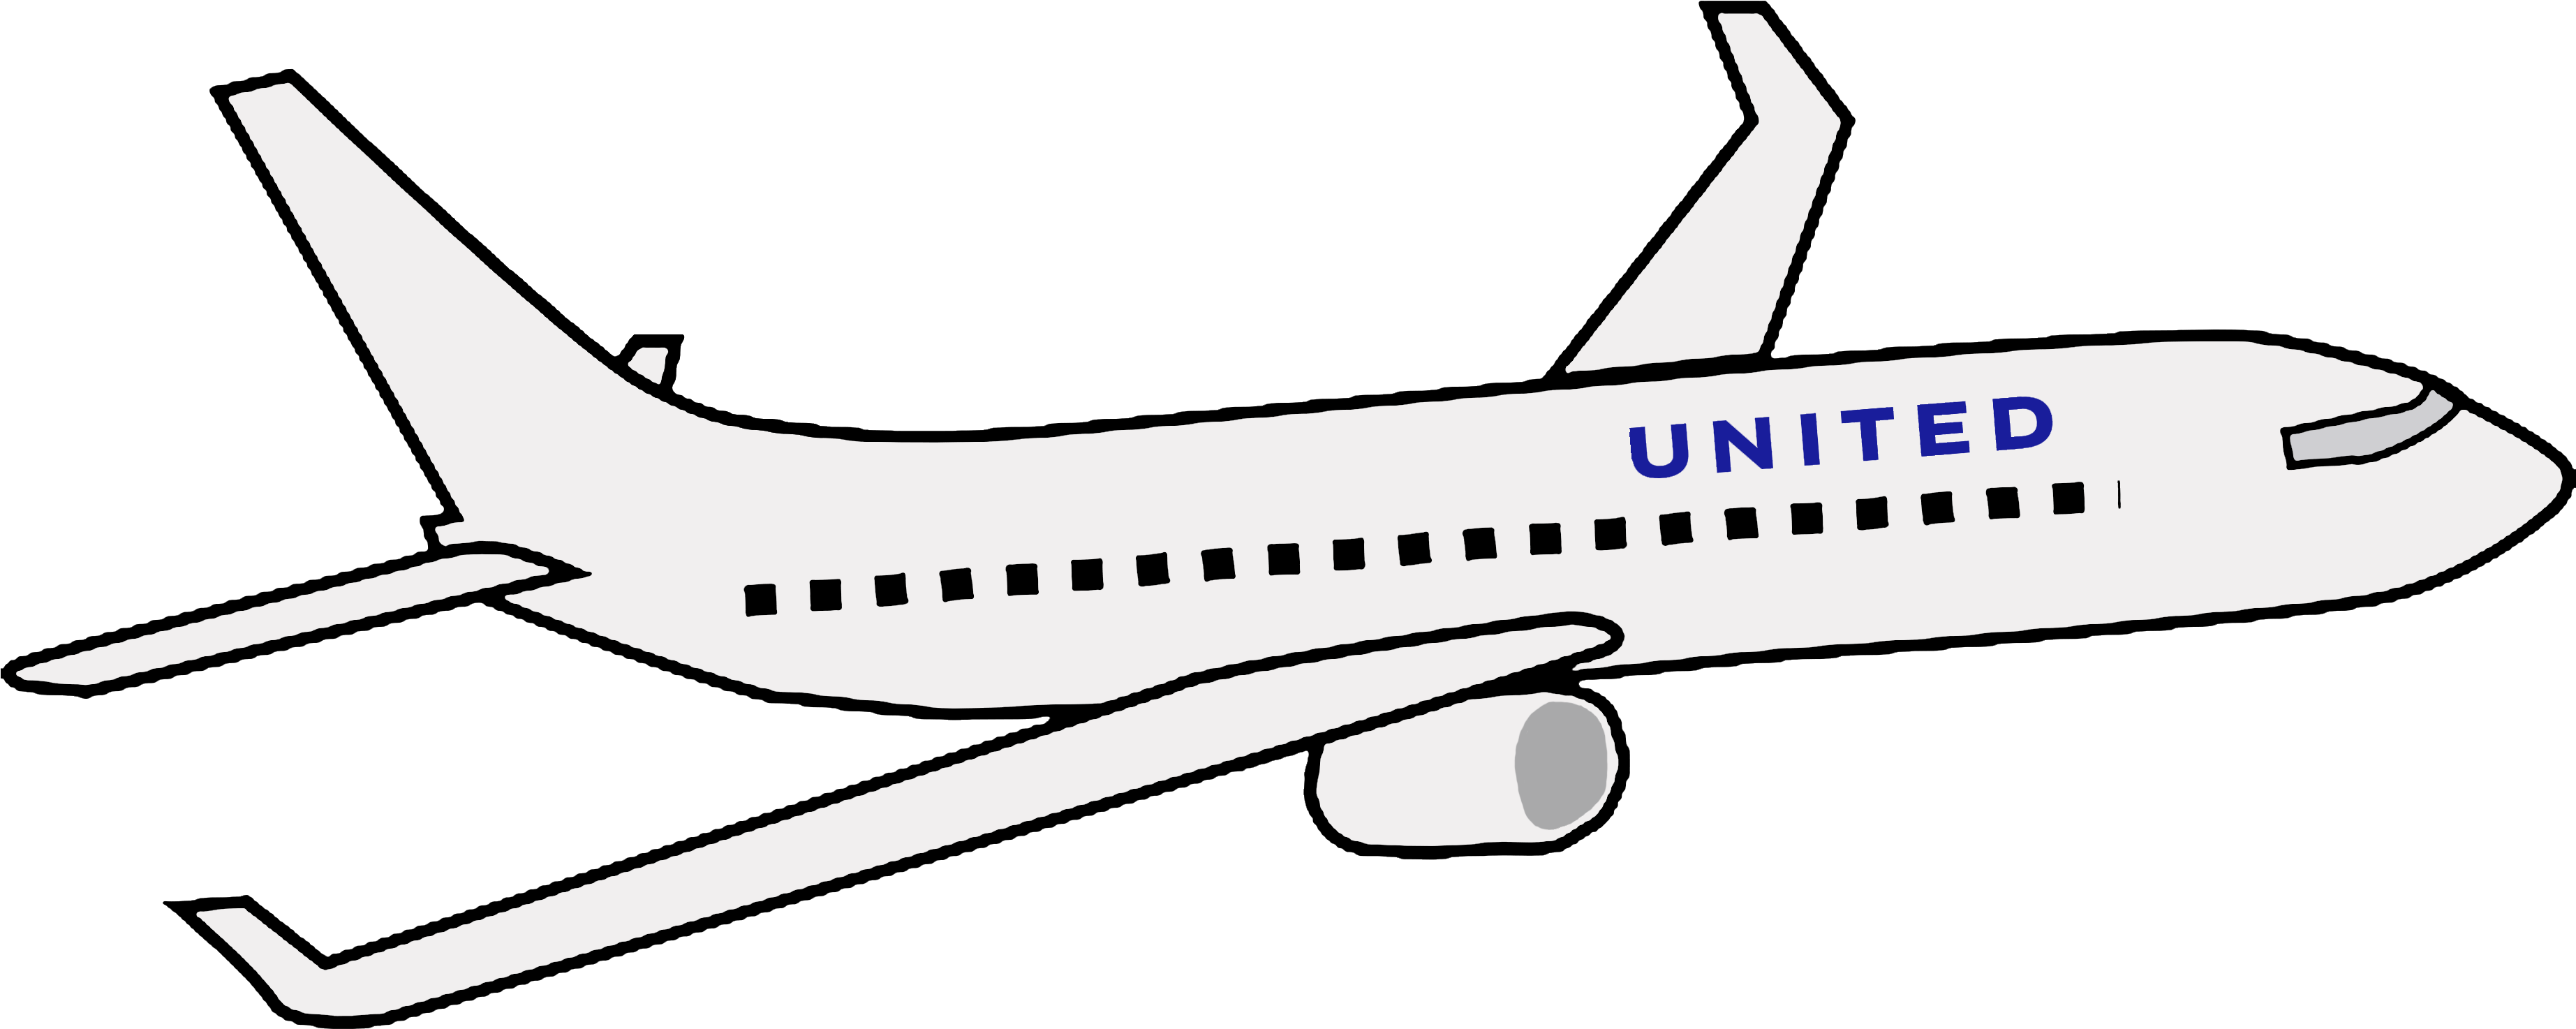 United Airlines Passenger Removal.